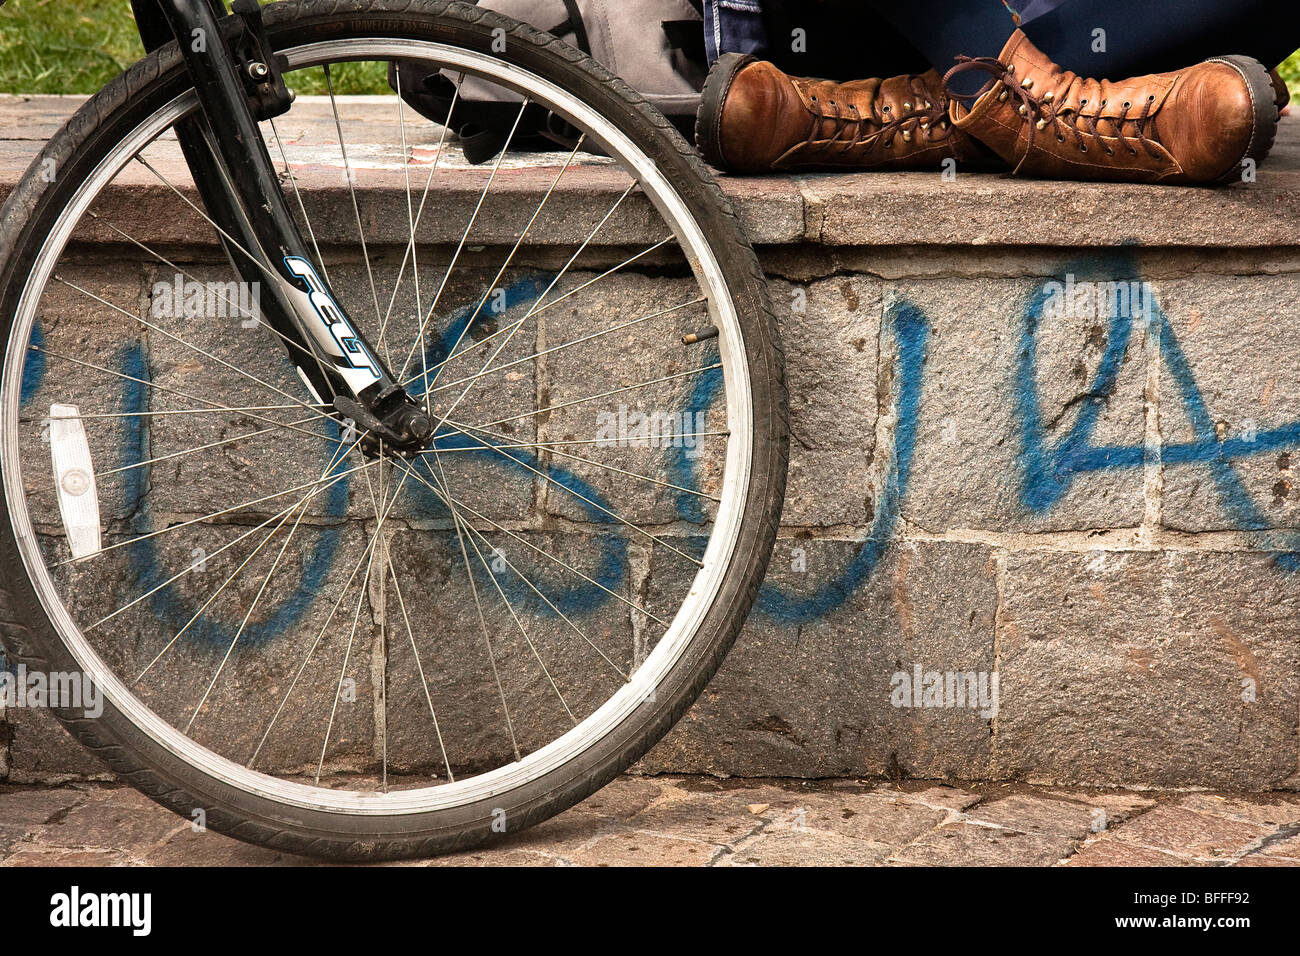 Participant in Critical Mass in Buenos aires sitting with their bicycle - Stock Image